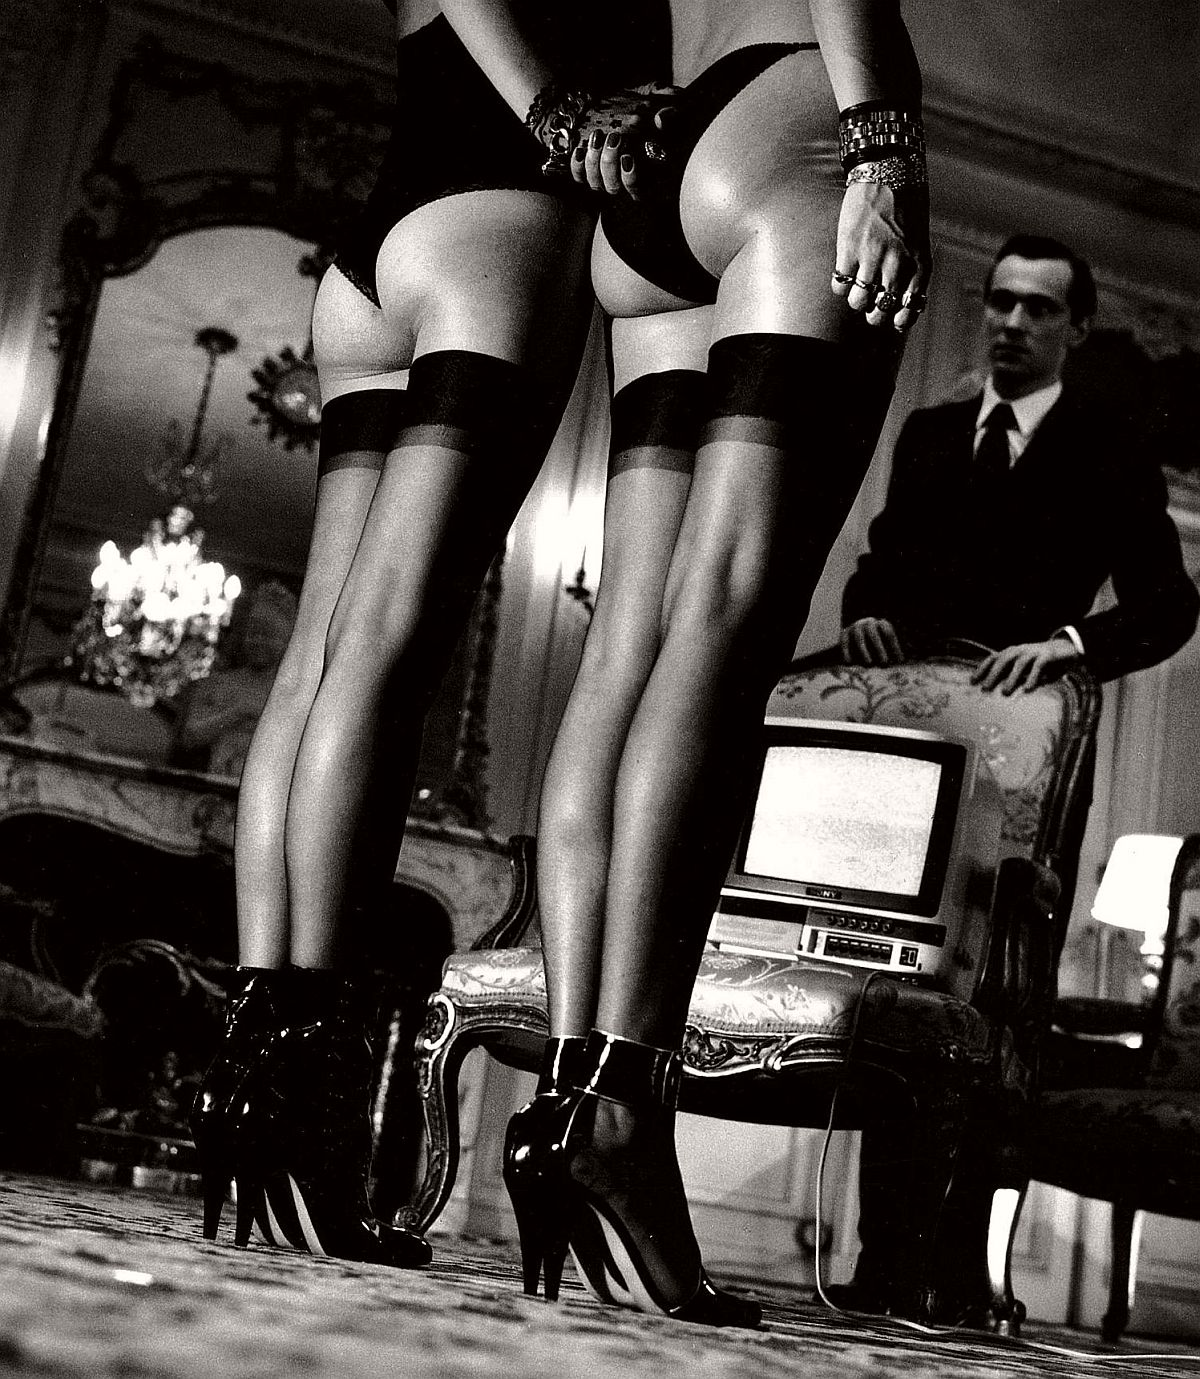 Two Pairs of Legs in bluch Stockings, Paris, 1979, signé